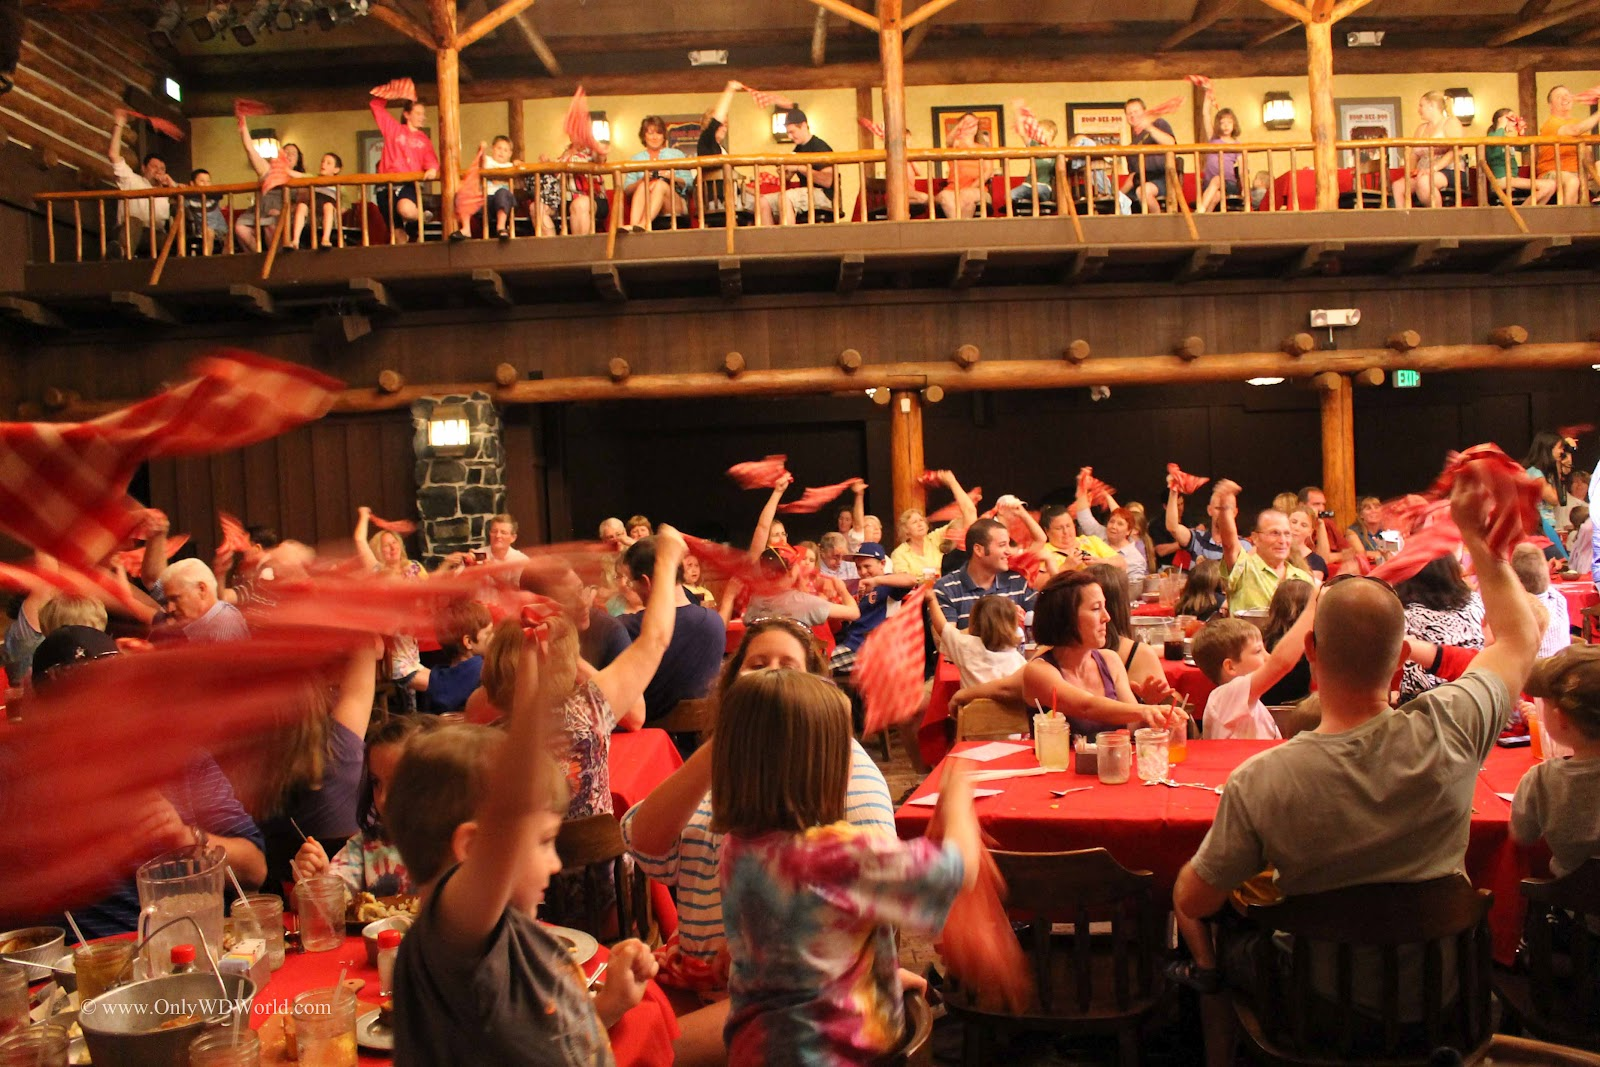 Disney World Family Fun At The Hoop Dee Doo Musical Revue